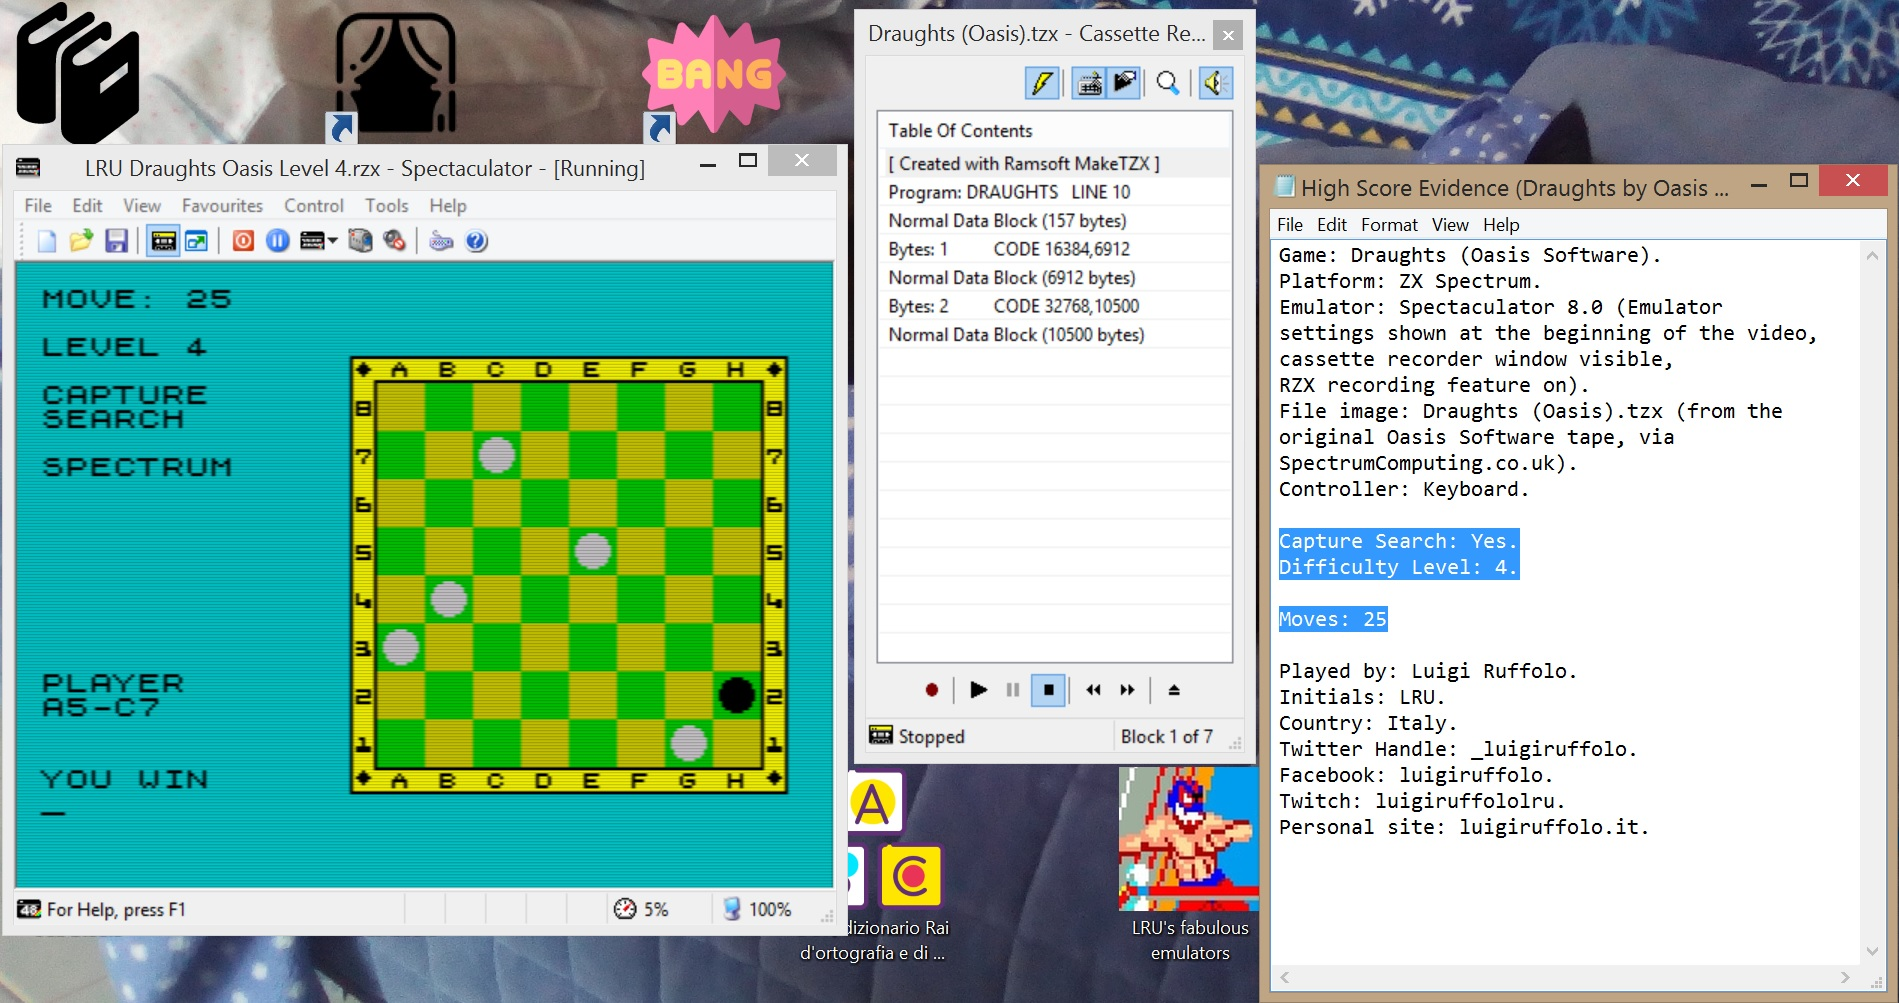 LuigiRuffolo: Draughts [Oasis Software][Level 4: Capture Search][Moves to Win] (ZX Spectrum Emulated) 25 points on 2020-06-30 04:02:01